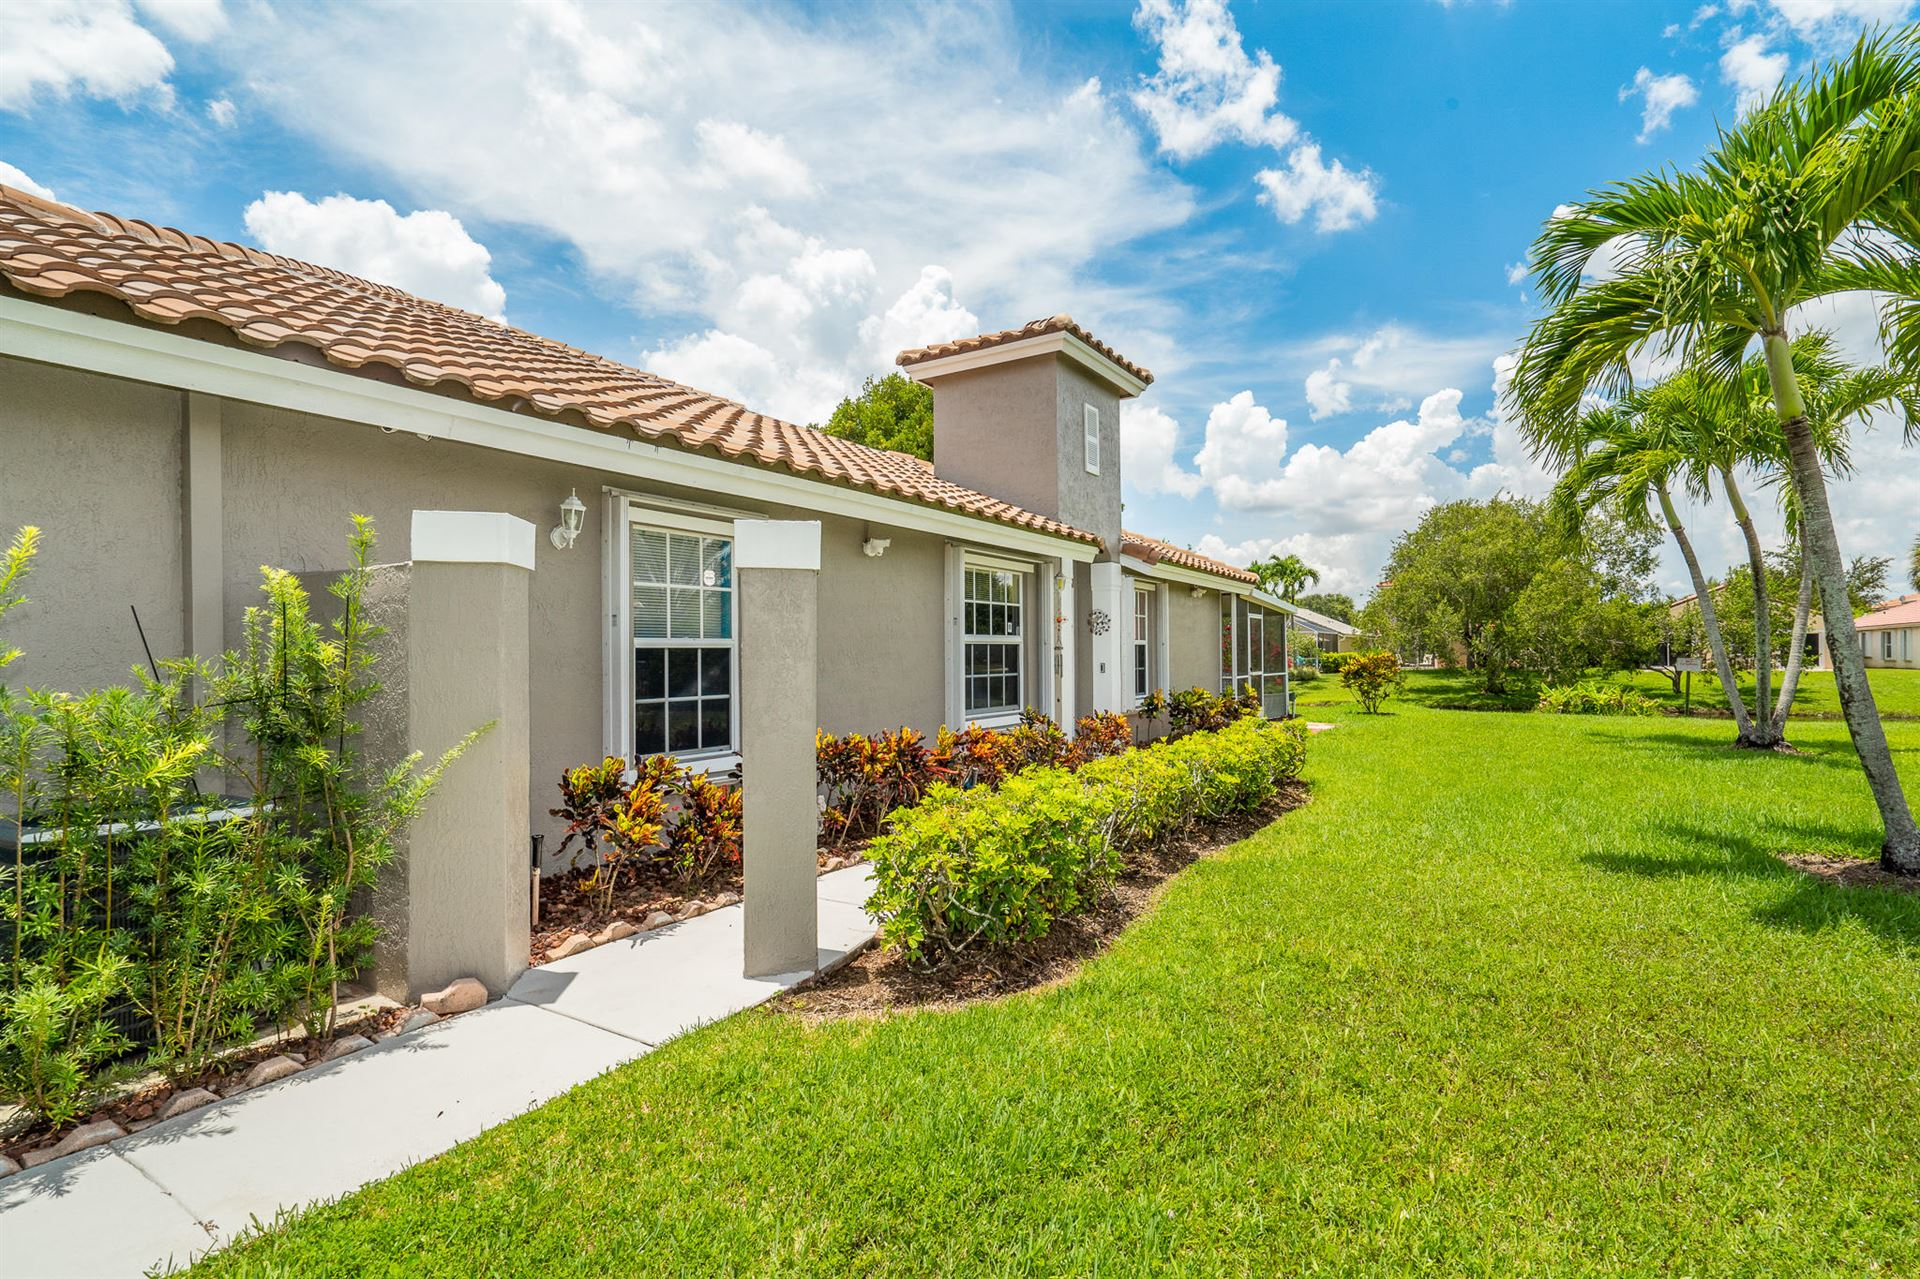 Photo of 5640 NW 120th Terrace, Coral Springs, FL 33076 (MLS # RX-10733041)